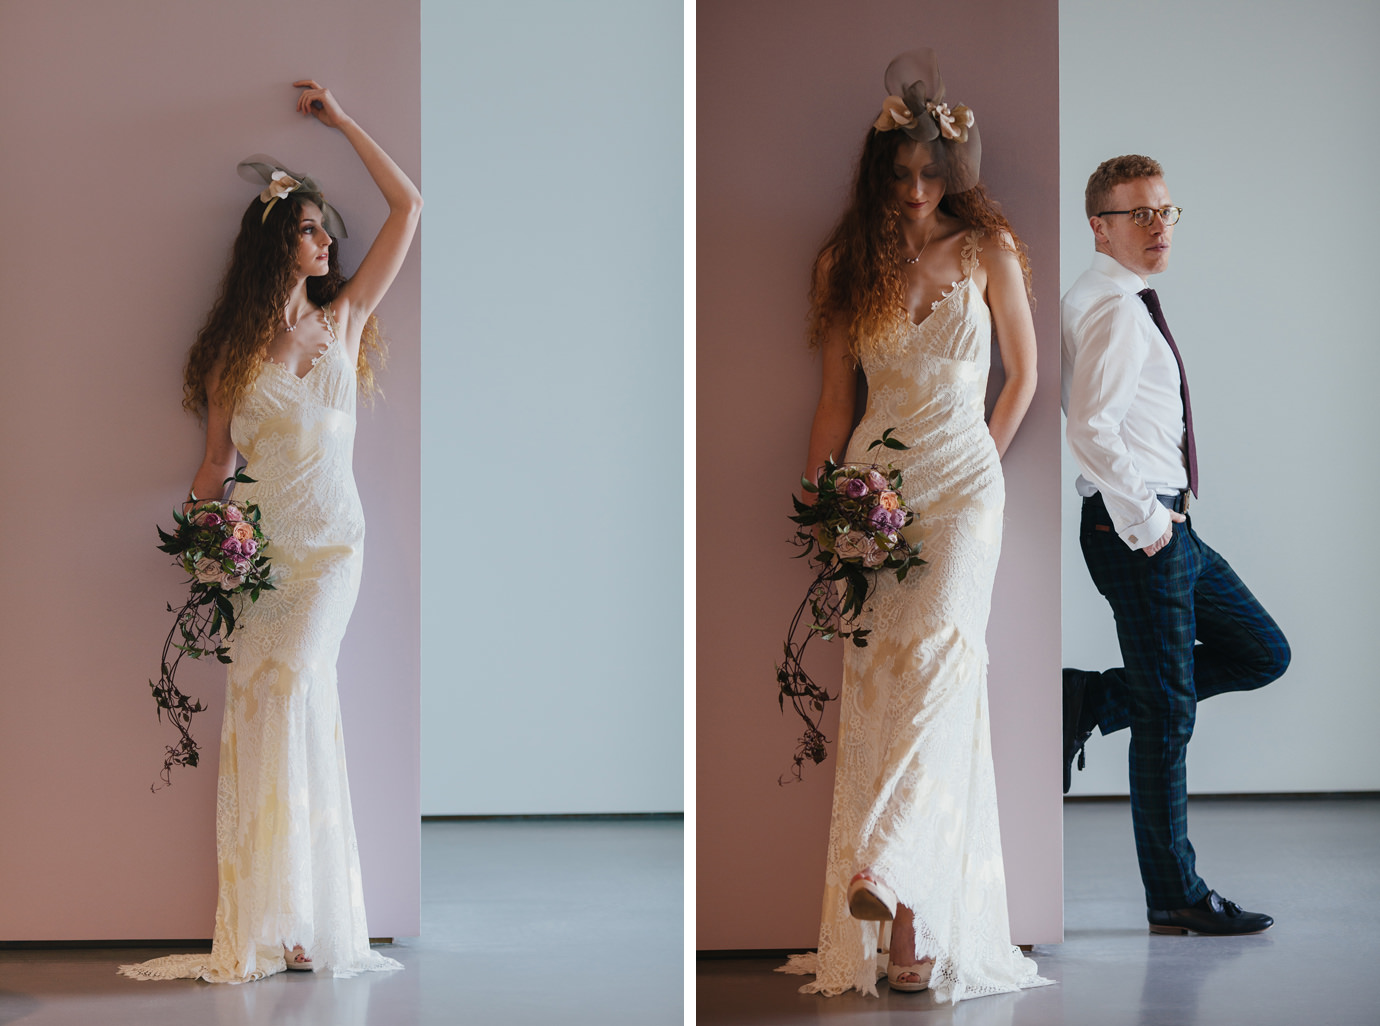 Alternative wedding portraiture at the Hepworth Wakefield